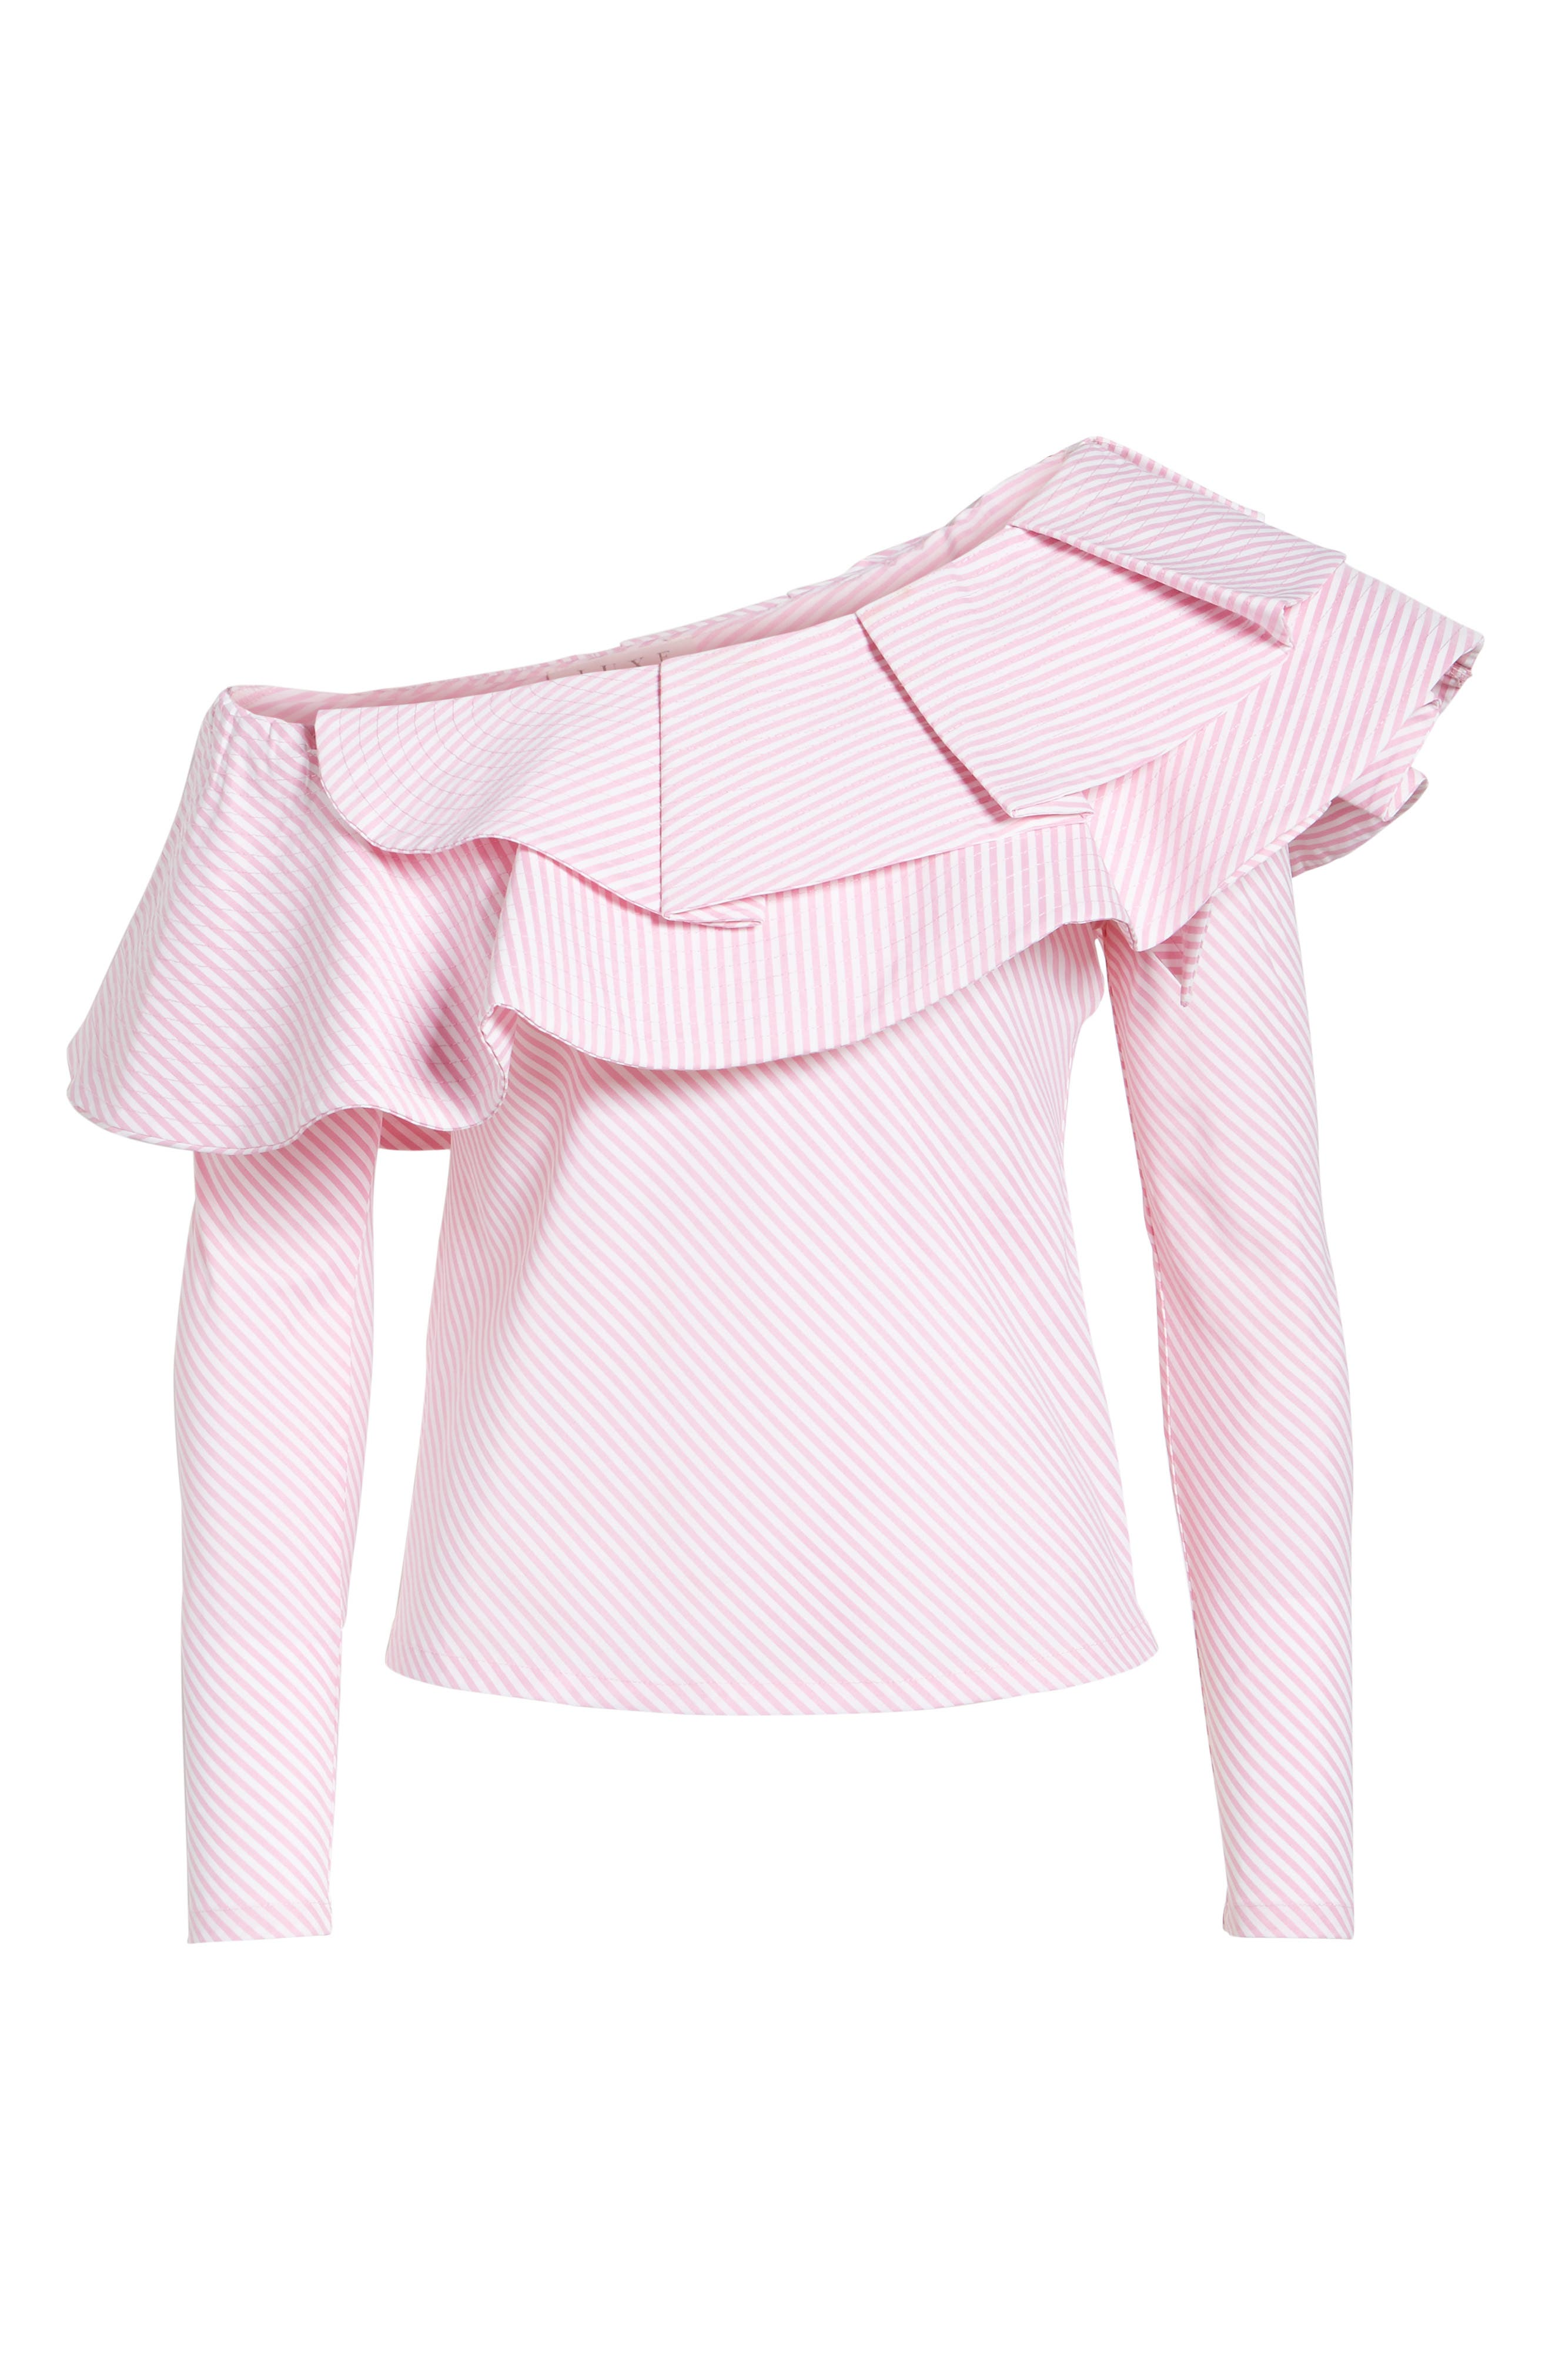 Think Fashion One-Shoulder Top,                             Alternate thumbnail 6, color,